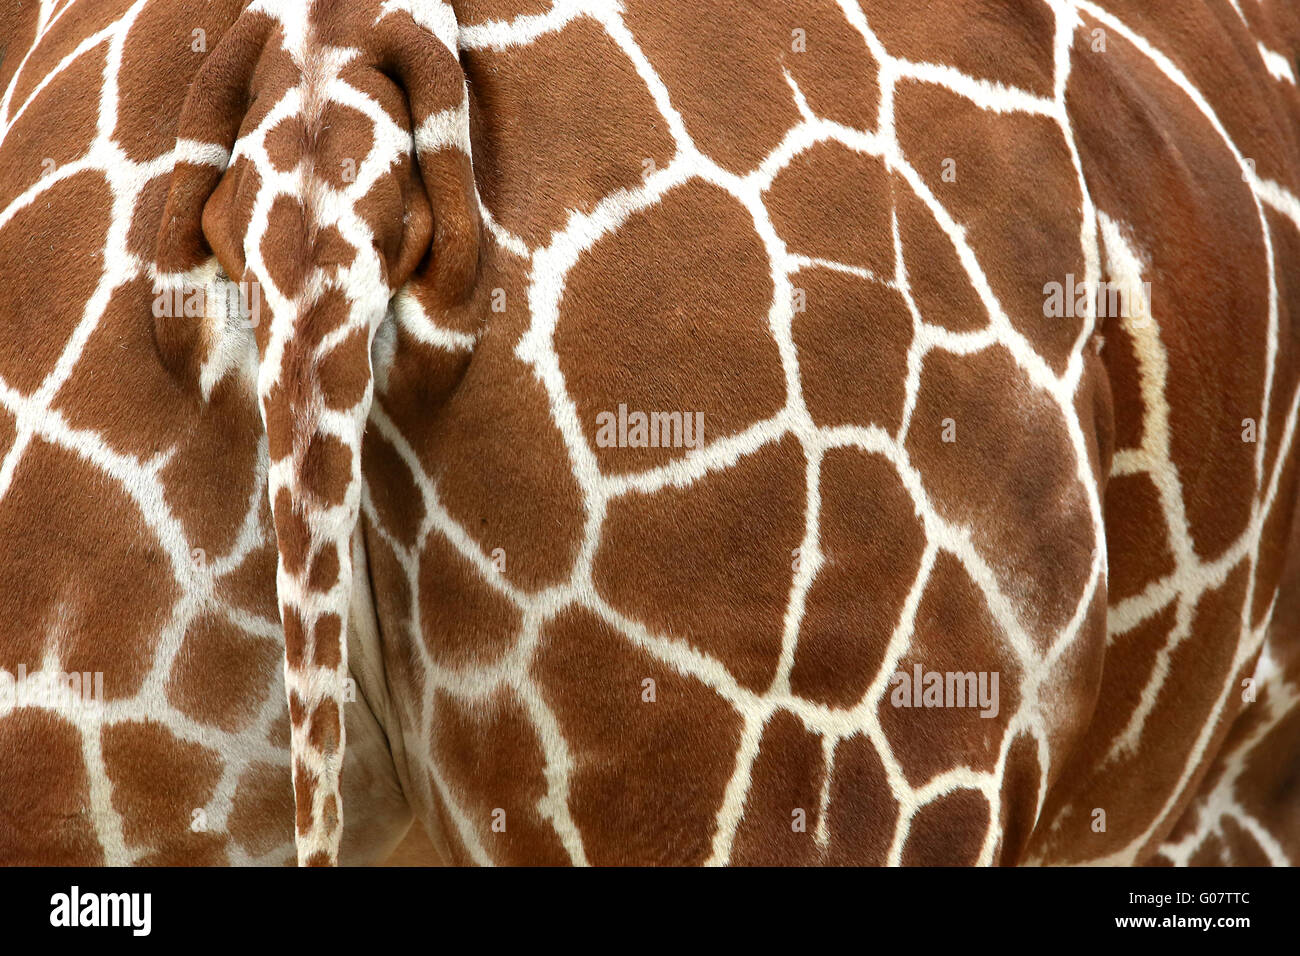 RETICULATED GIRAFFE - Stock Image